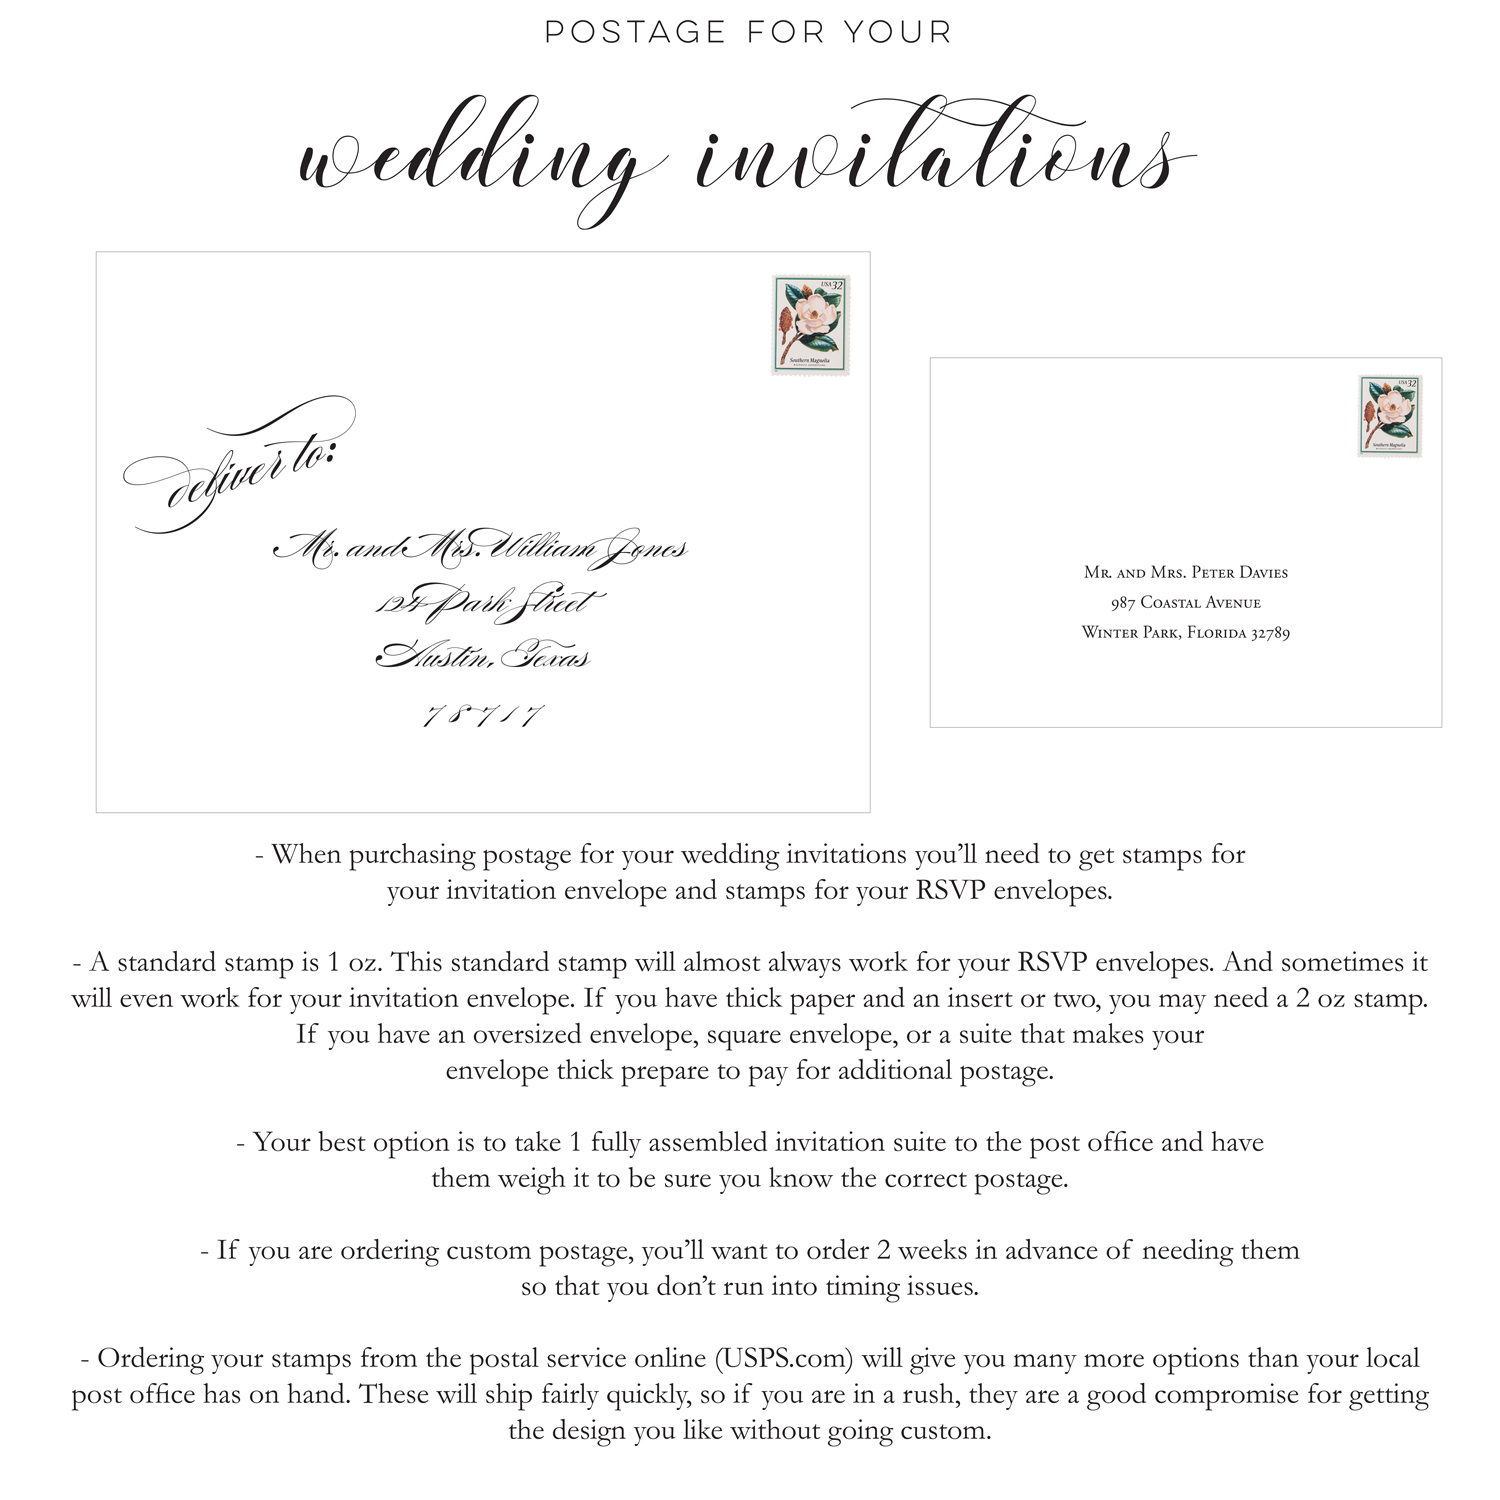 Blush Paperie: Postage for your wedding invitations